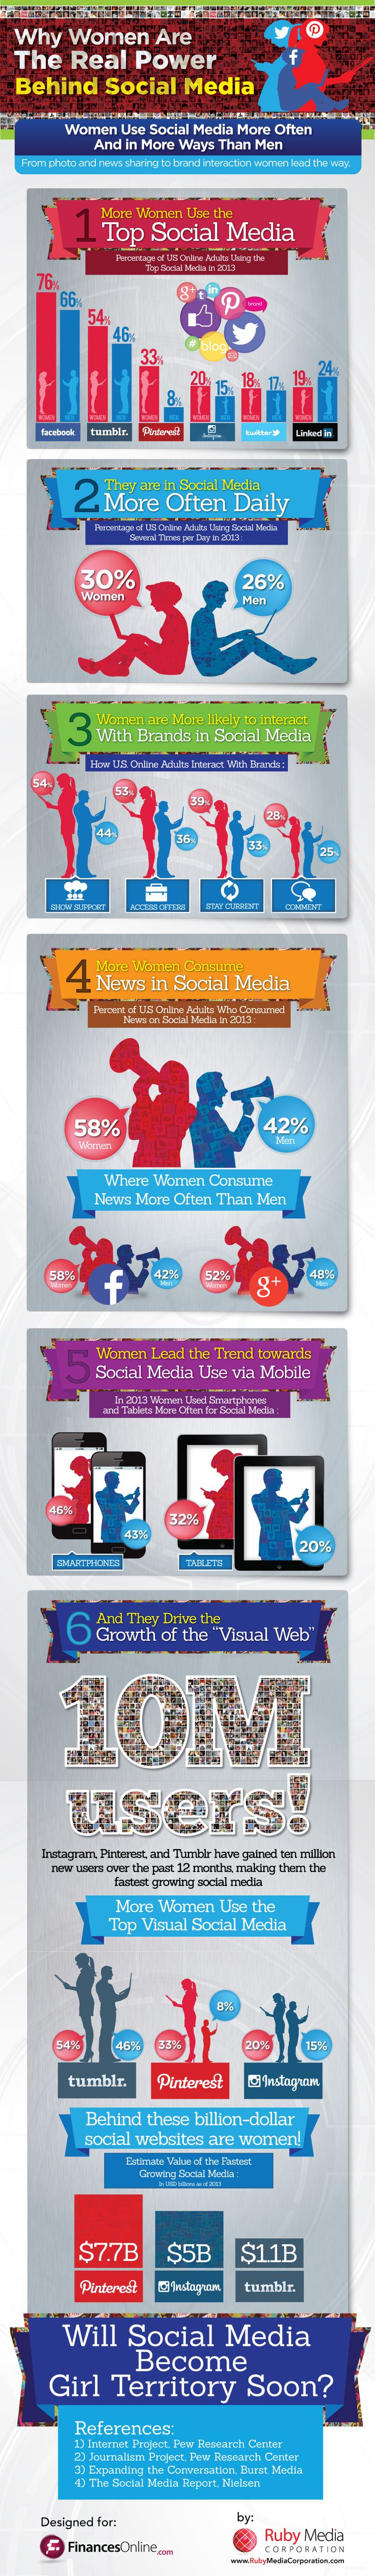 Women are the Real Power Behind Social Media #infographic